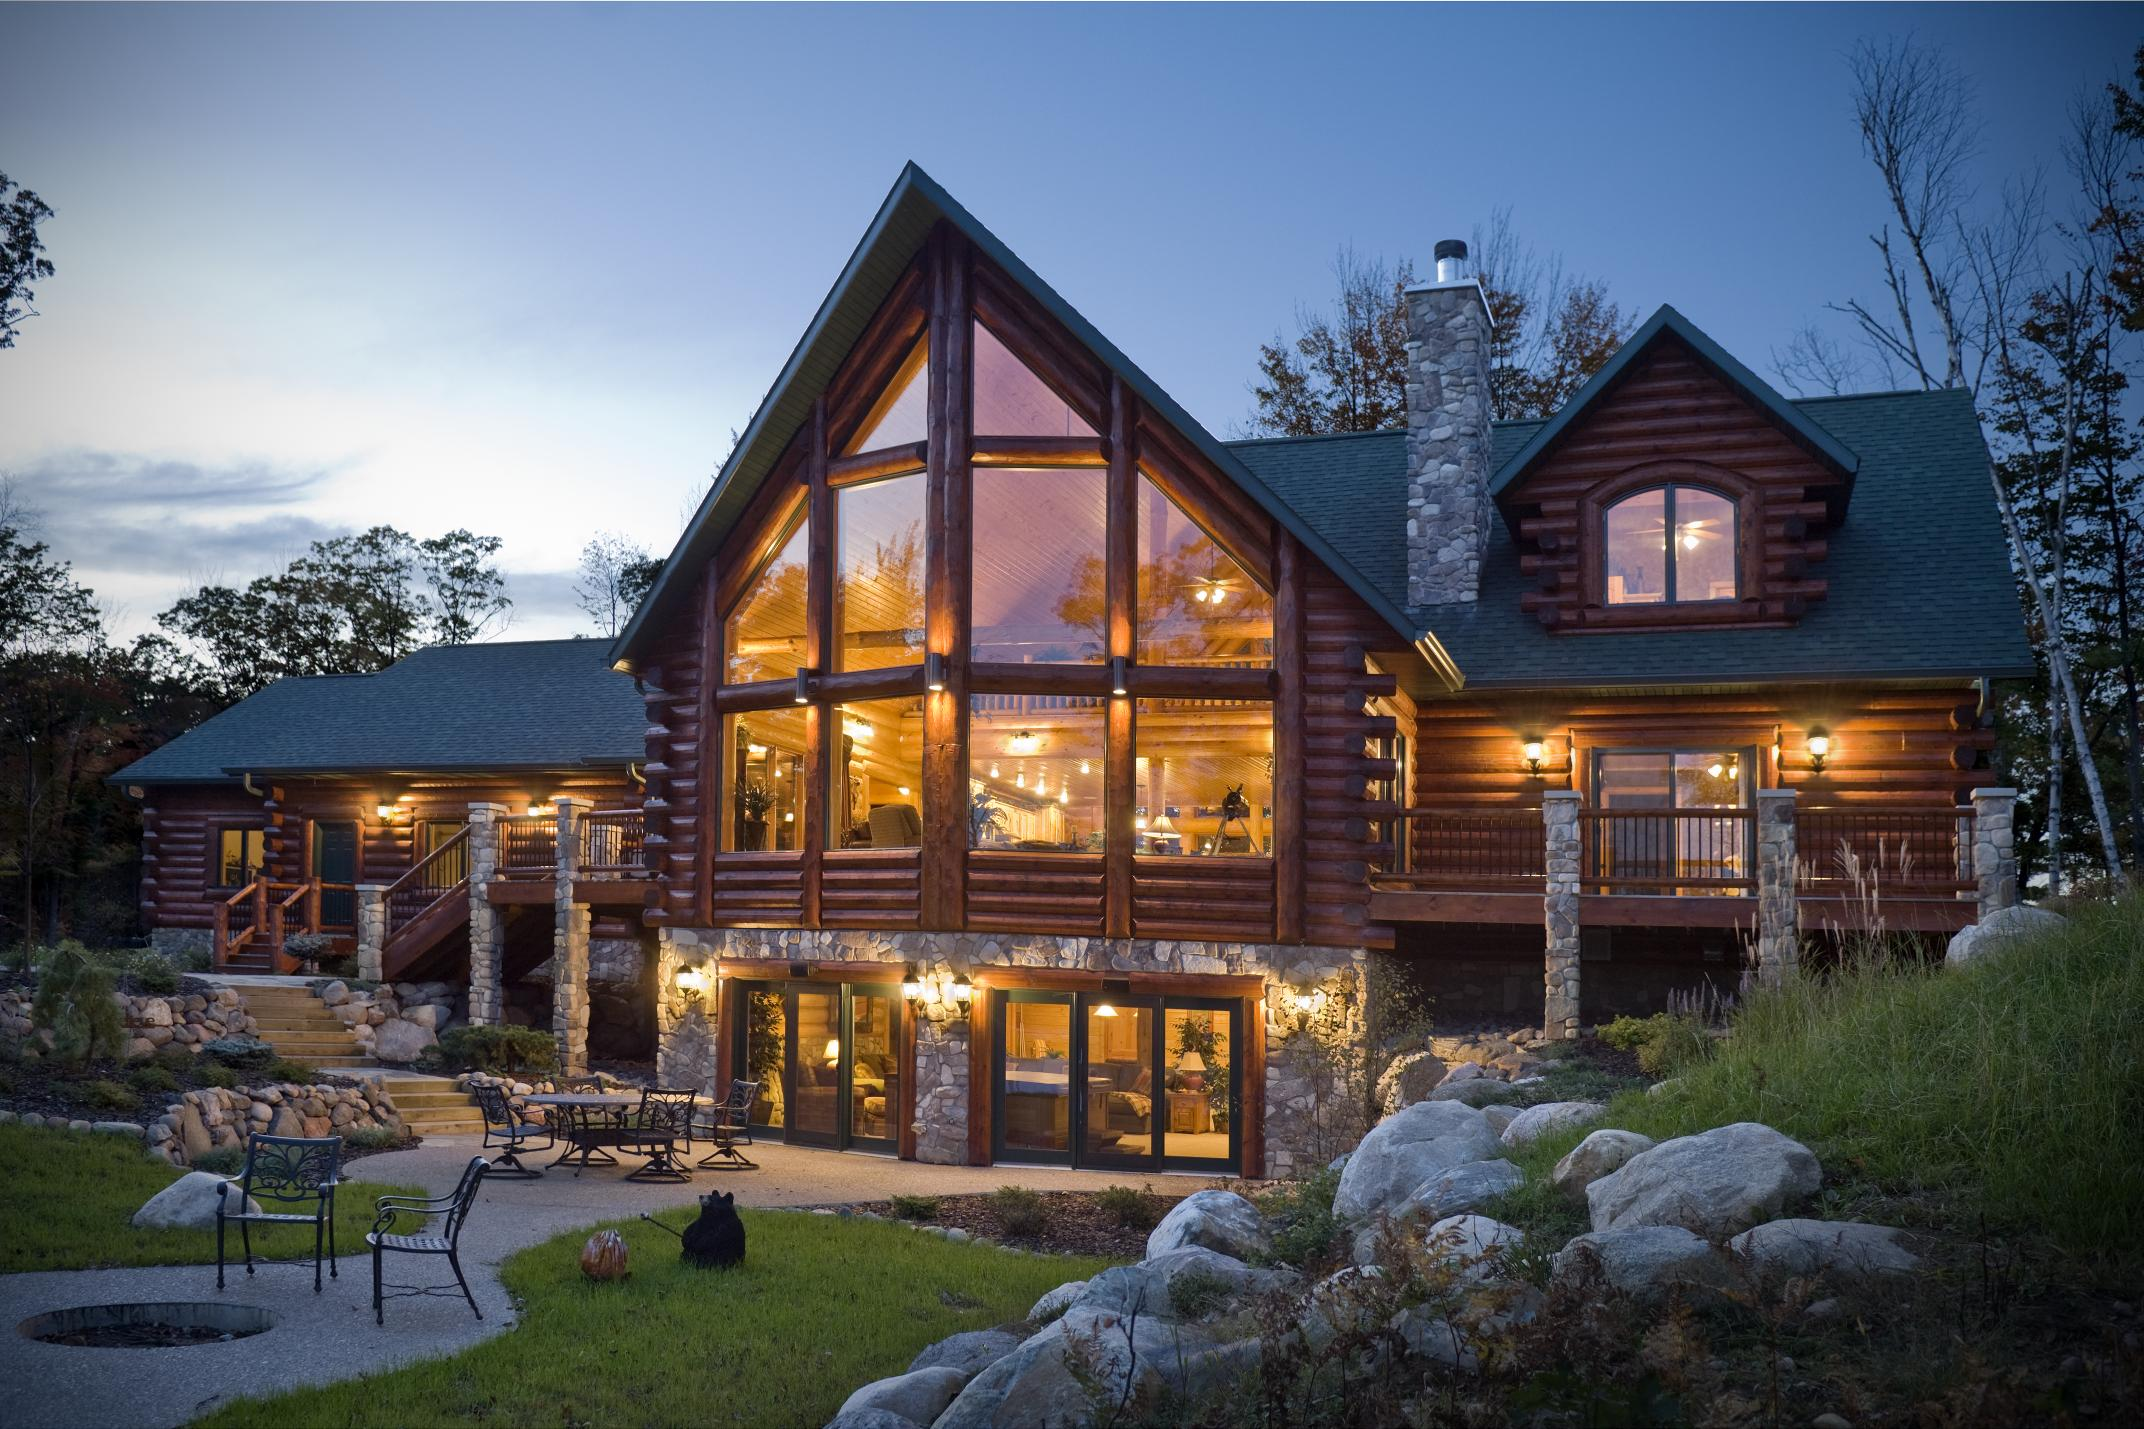 Sashco log home products and golden eagle log homes expand for Luxury log home plans with pictures